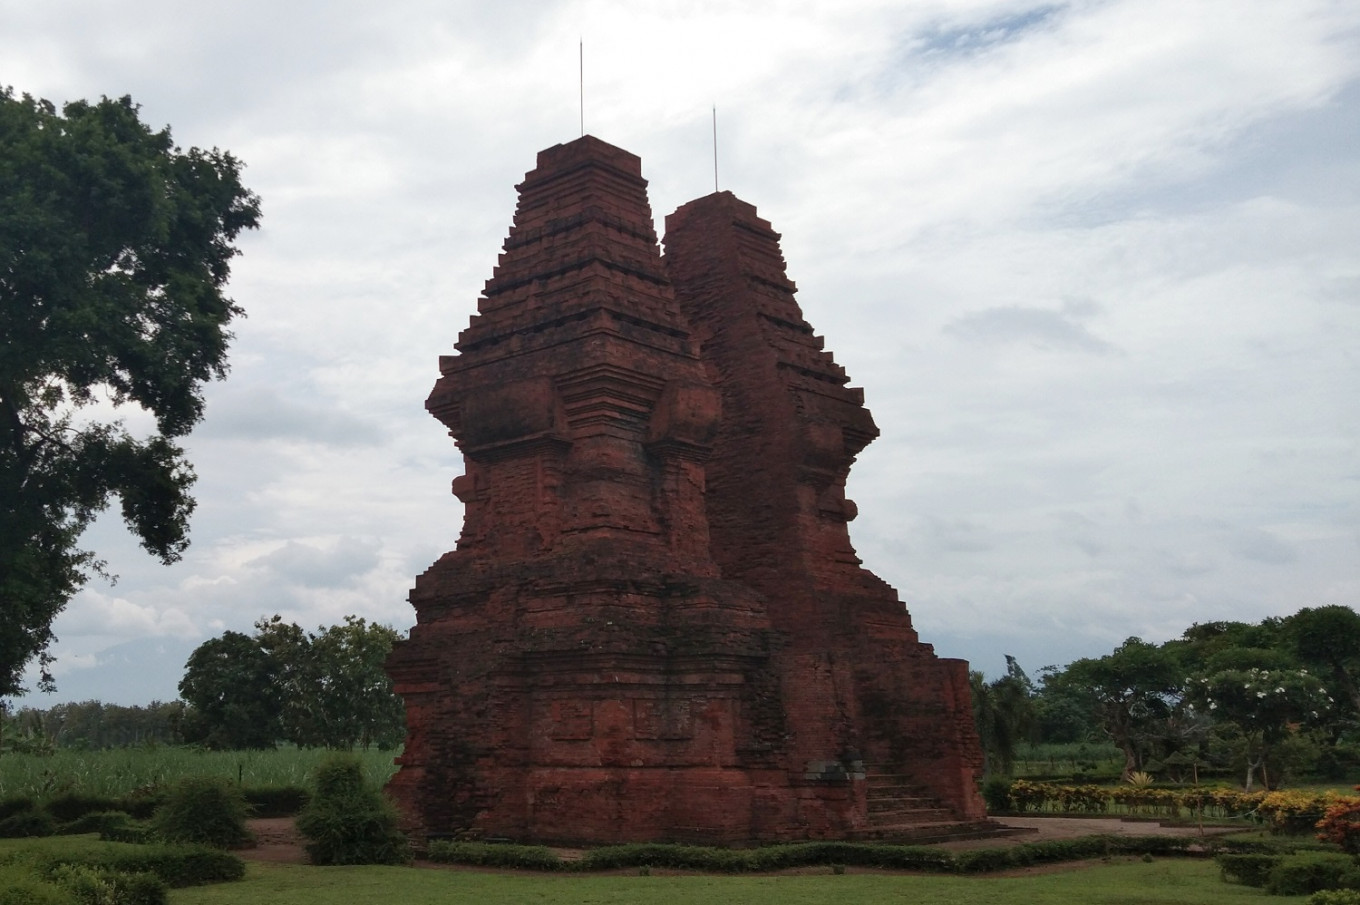 The Wringin Lawang gate is one of the few remaining structures of Trowulan, the capital of the Majapahit Empire.